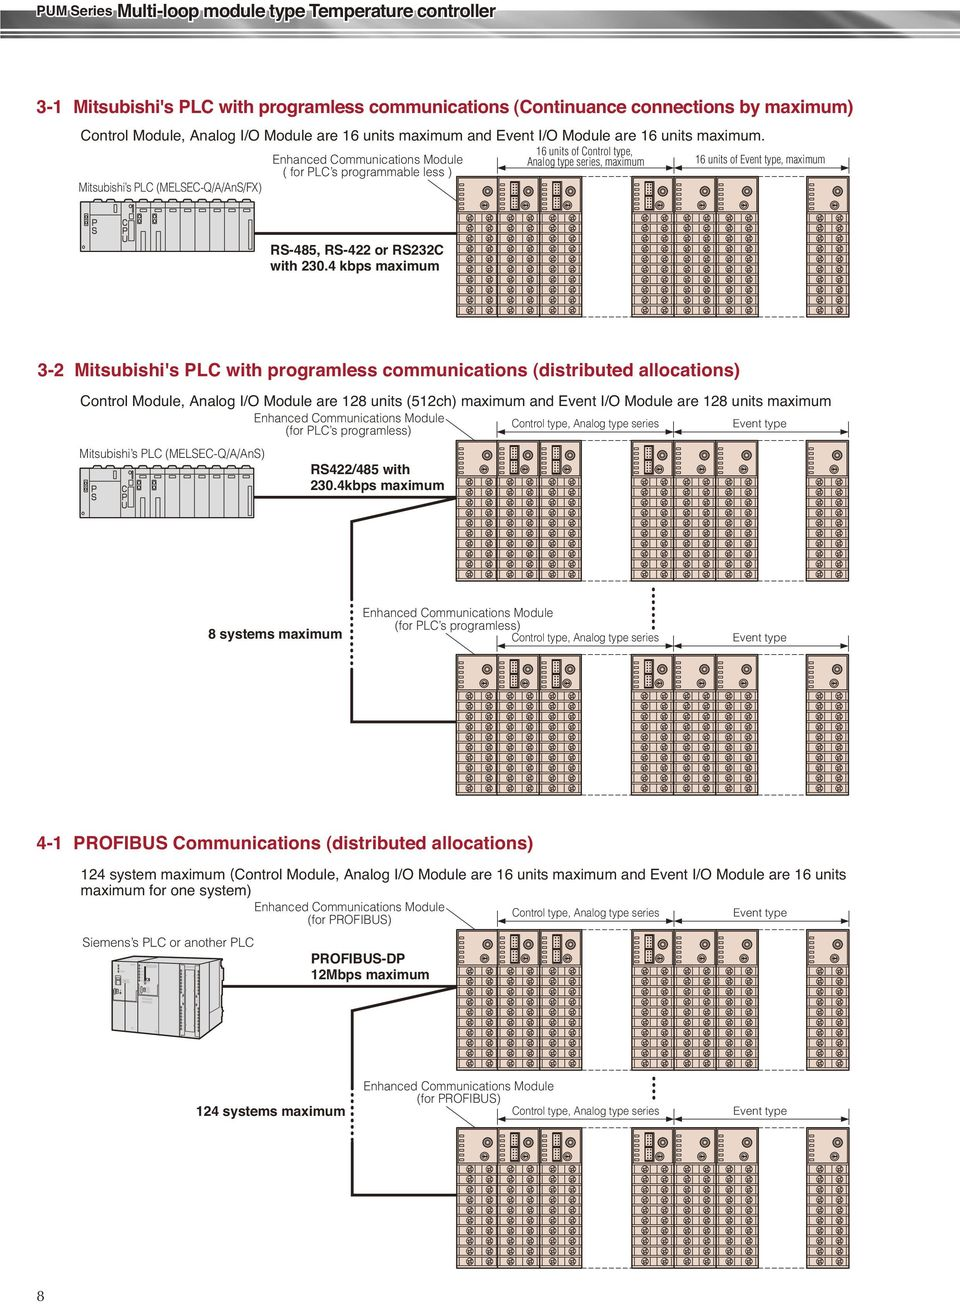 kbps maximum - Mitsubishi's PLC with programless communications (distributed allocations) Control Module, nalog I/O Module are units (ch) maximum and Event